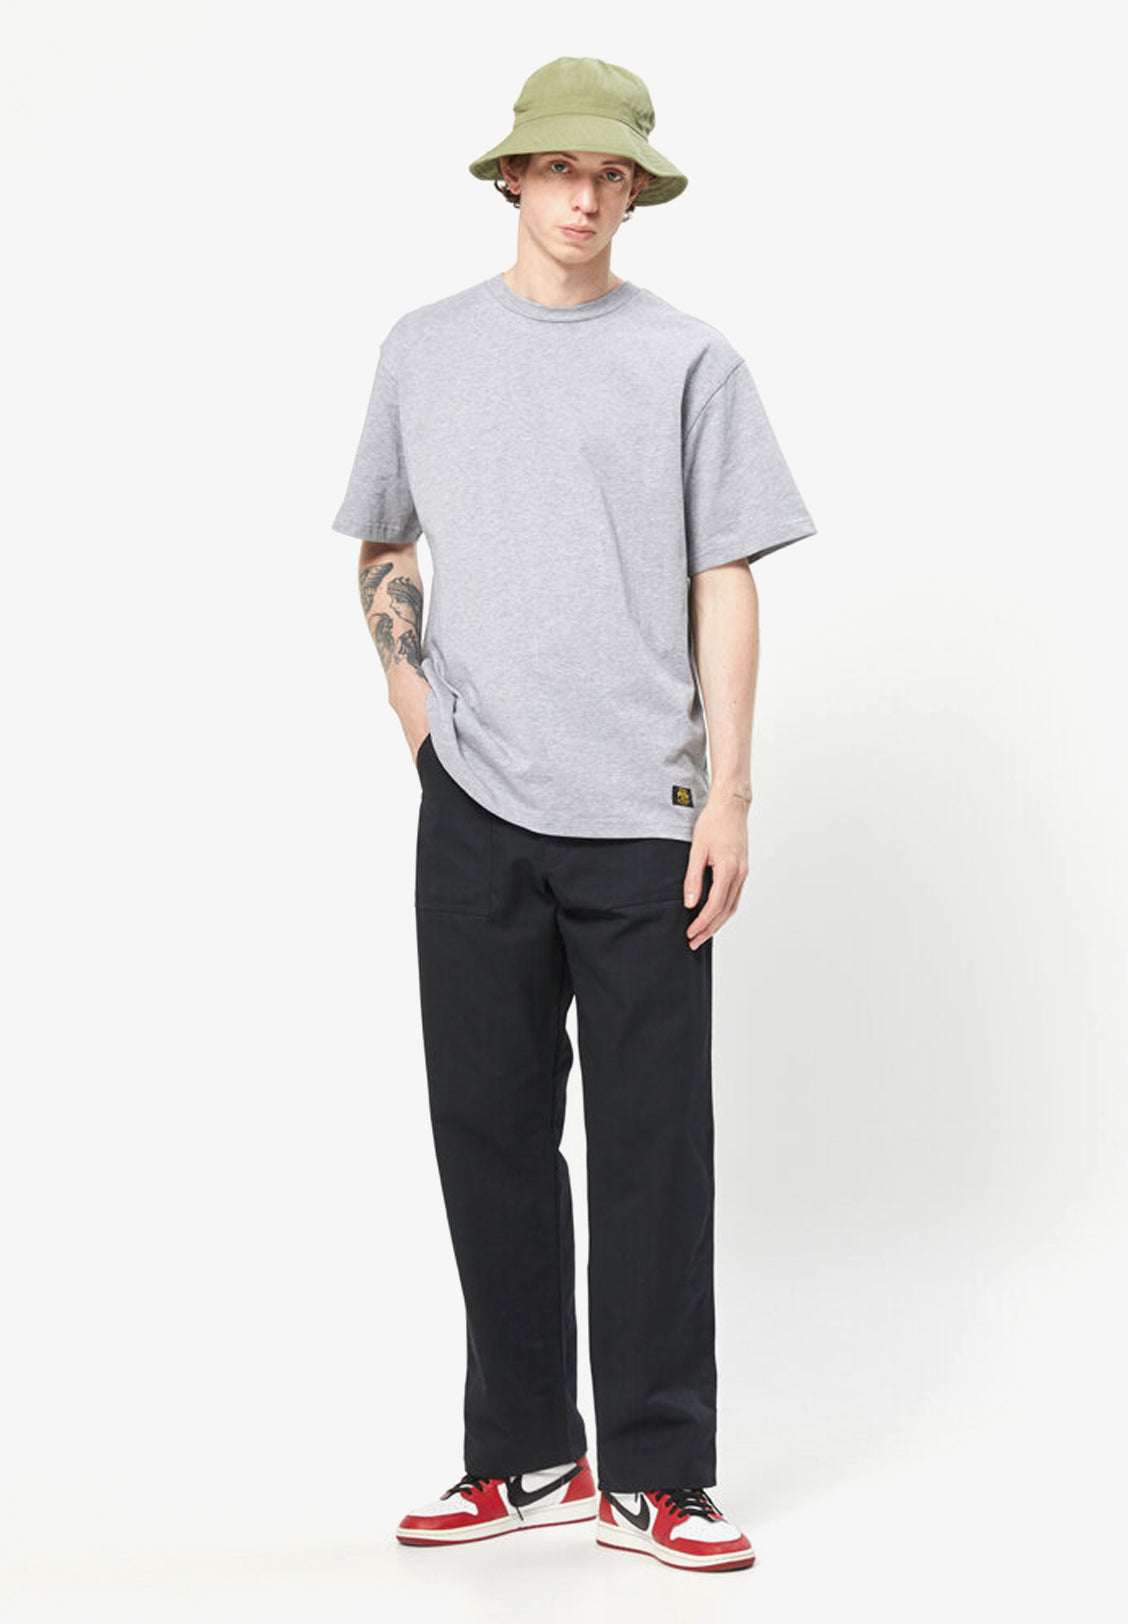 STAN RAY – FOUR POCKET FATIGUE PANT, BLACK TWILL